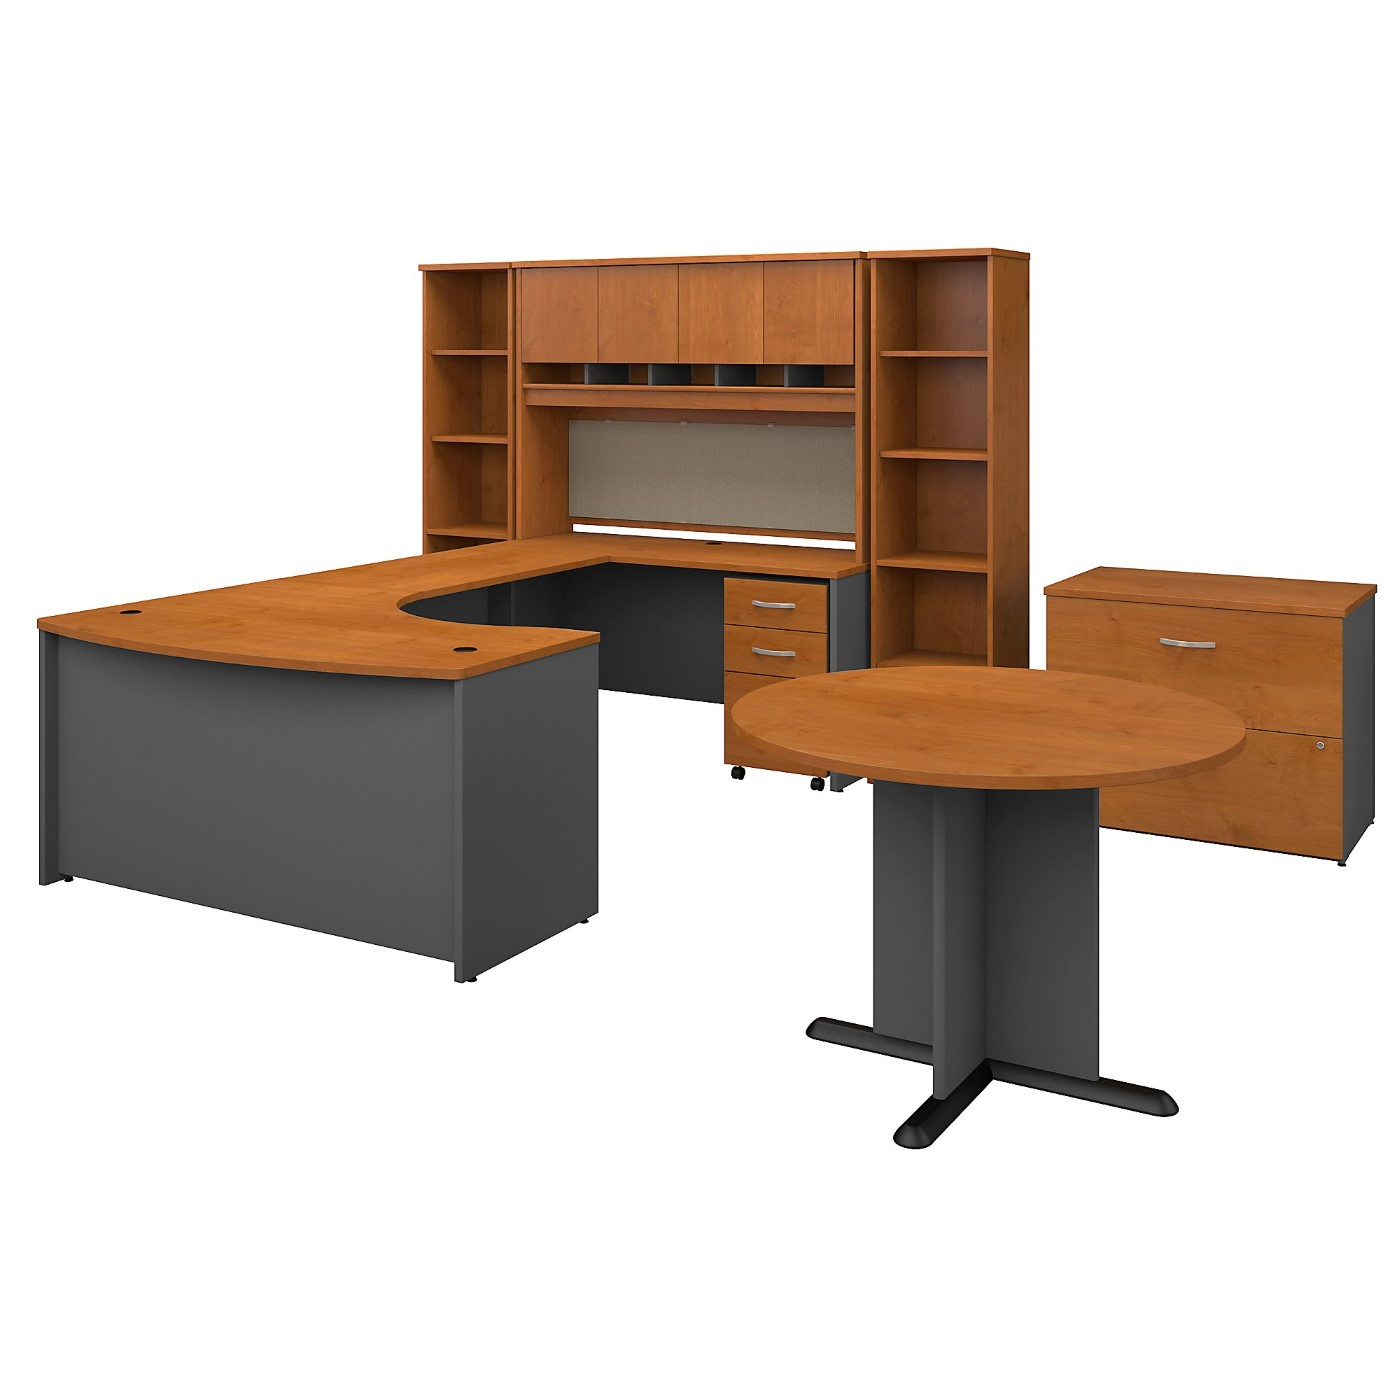 BUSH BUSINESS FURNITURE SERIES C 60W RIGHT HANDED BOW FRONT U SHAPED DESK WITH STORAGE AND CONFERENCE TABLE. FREE SHIPPING SALE DEDUCT 10% MORE ENTER '10percent' IN COUPON CODE BOX WHILE CHECKING OUT.